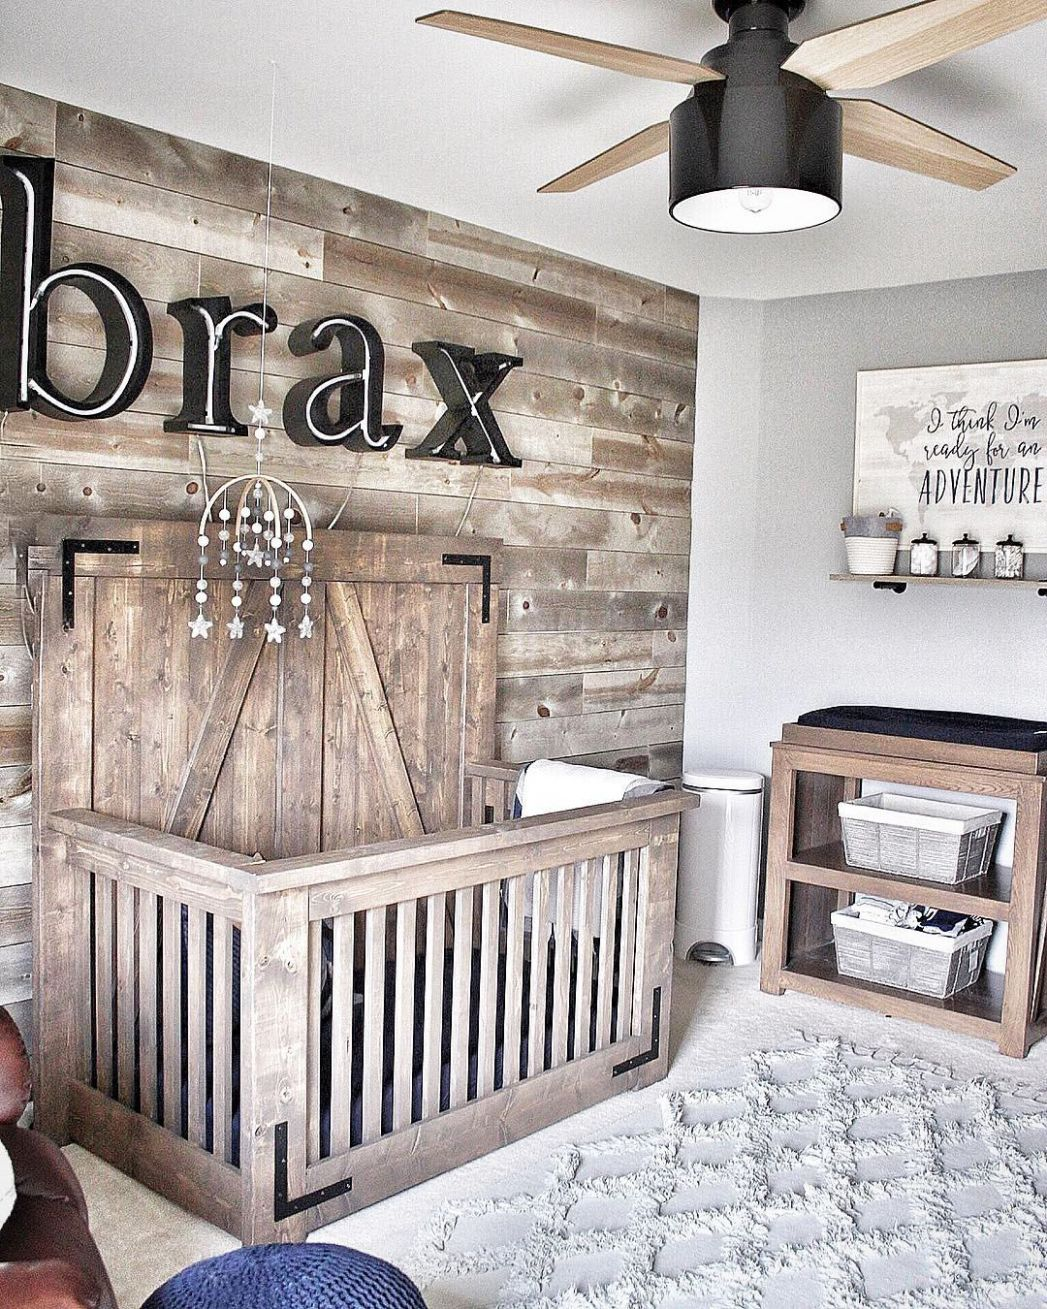 Cranbrook Low Profile with Light 9 inch | Baby boy rooms, Baby ..